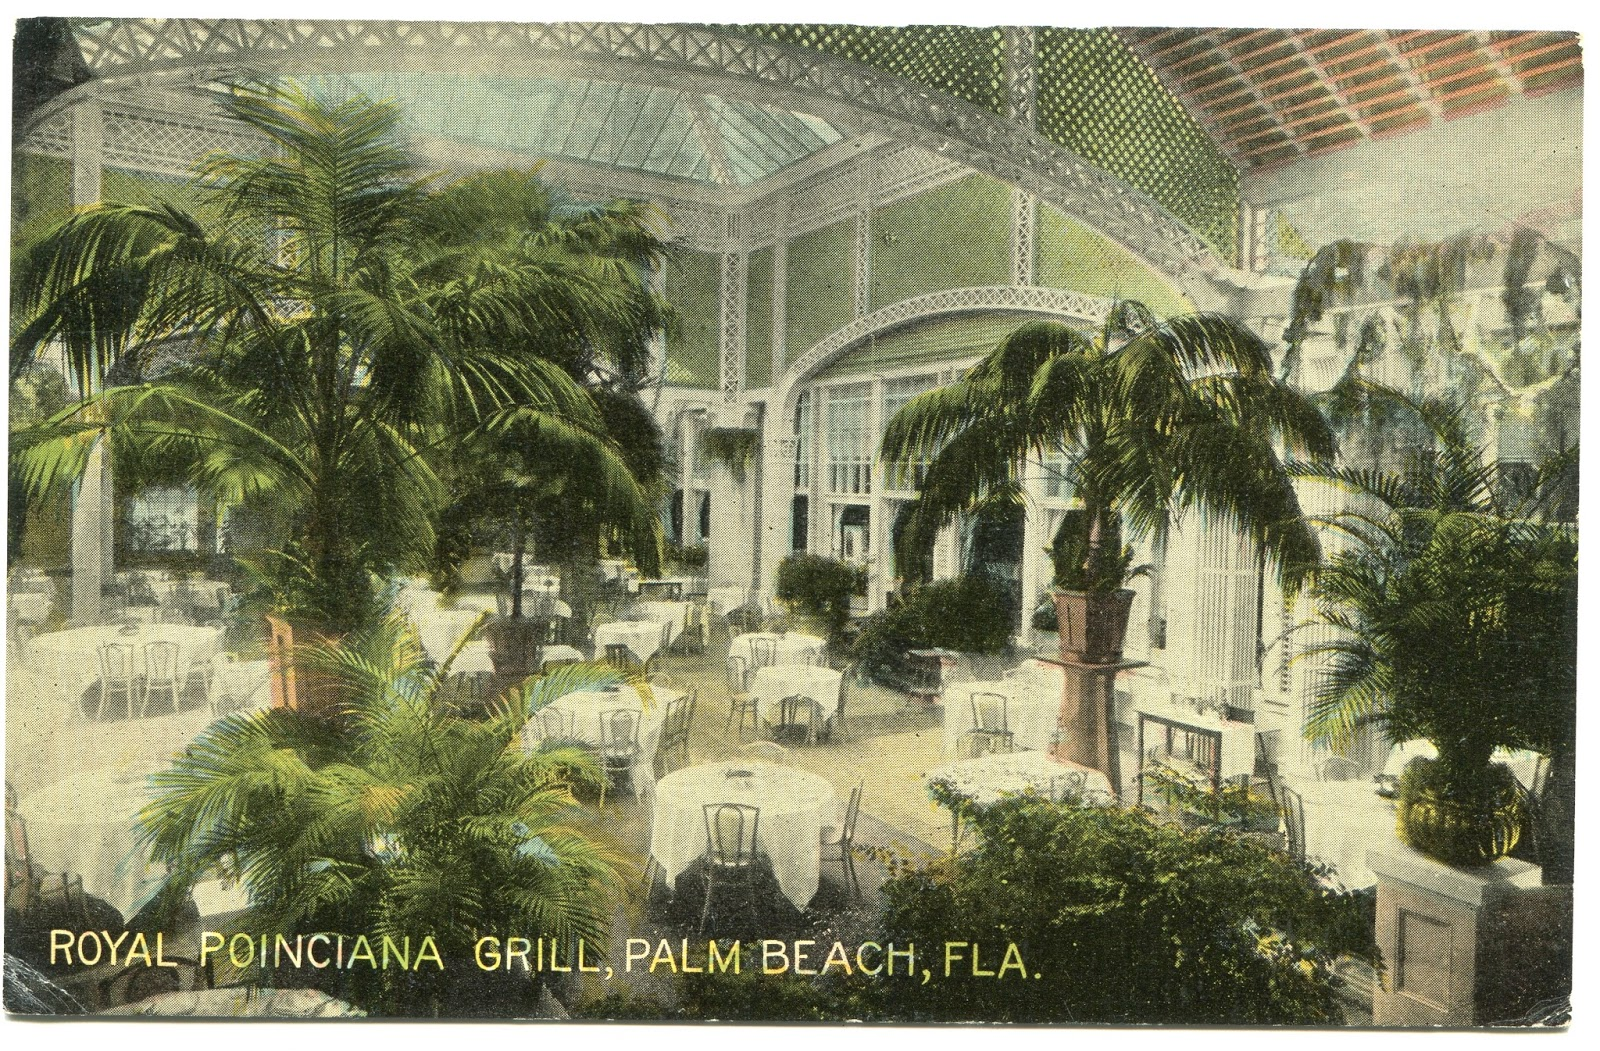 Welcome to the Hotel Royal Poinciana